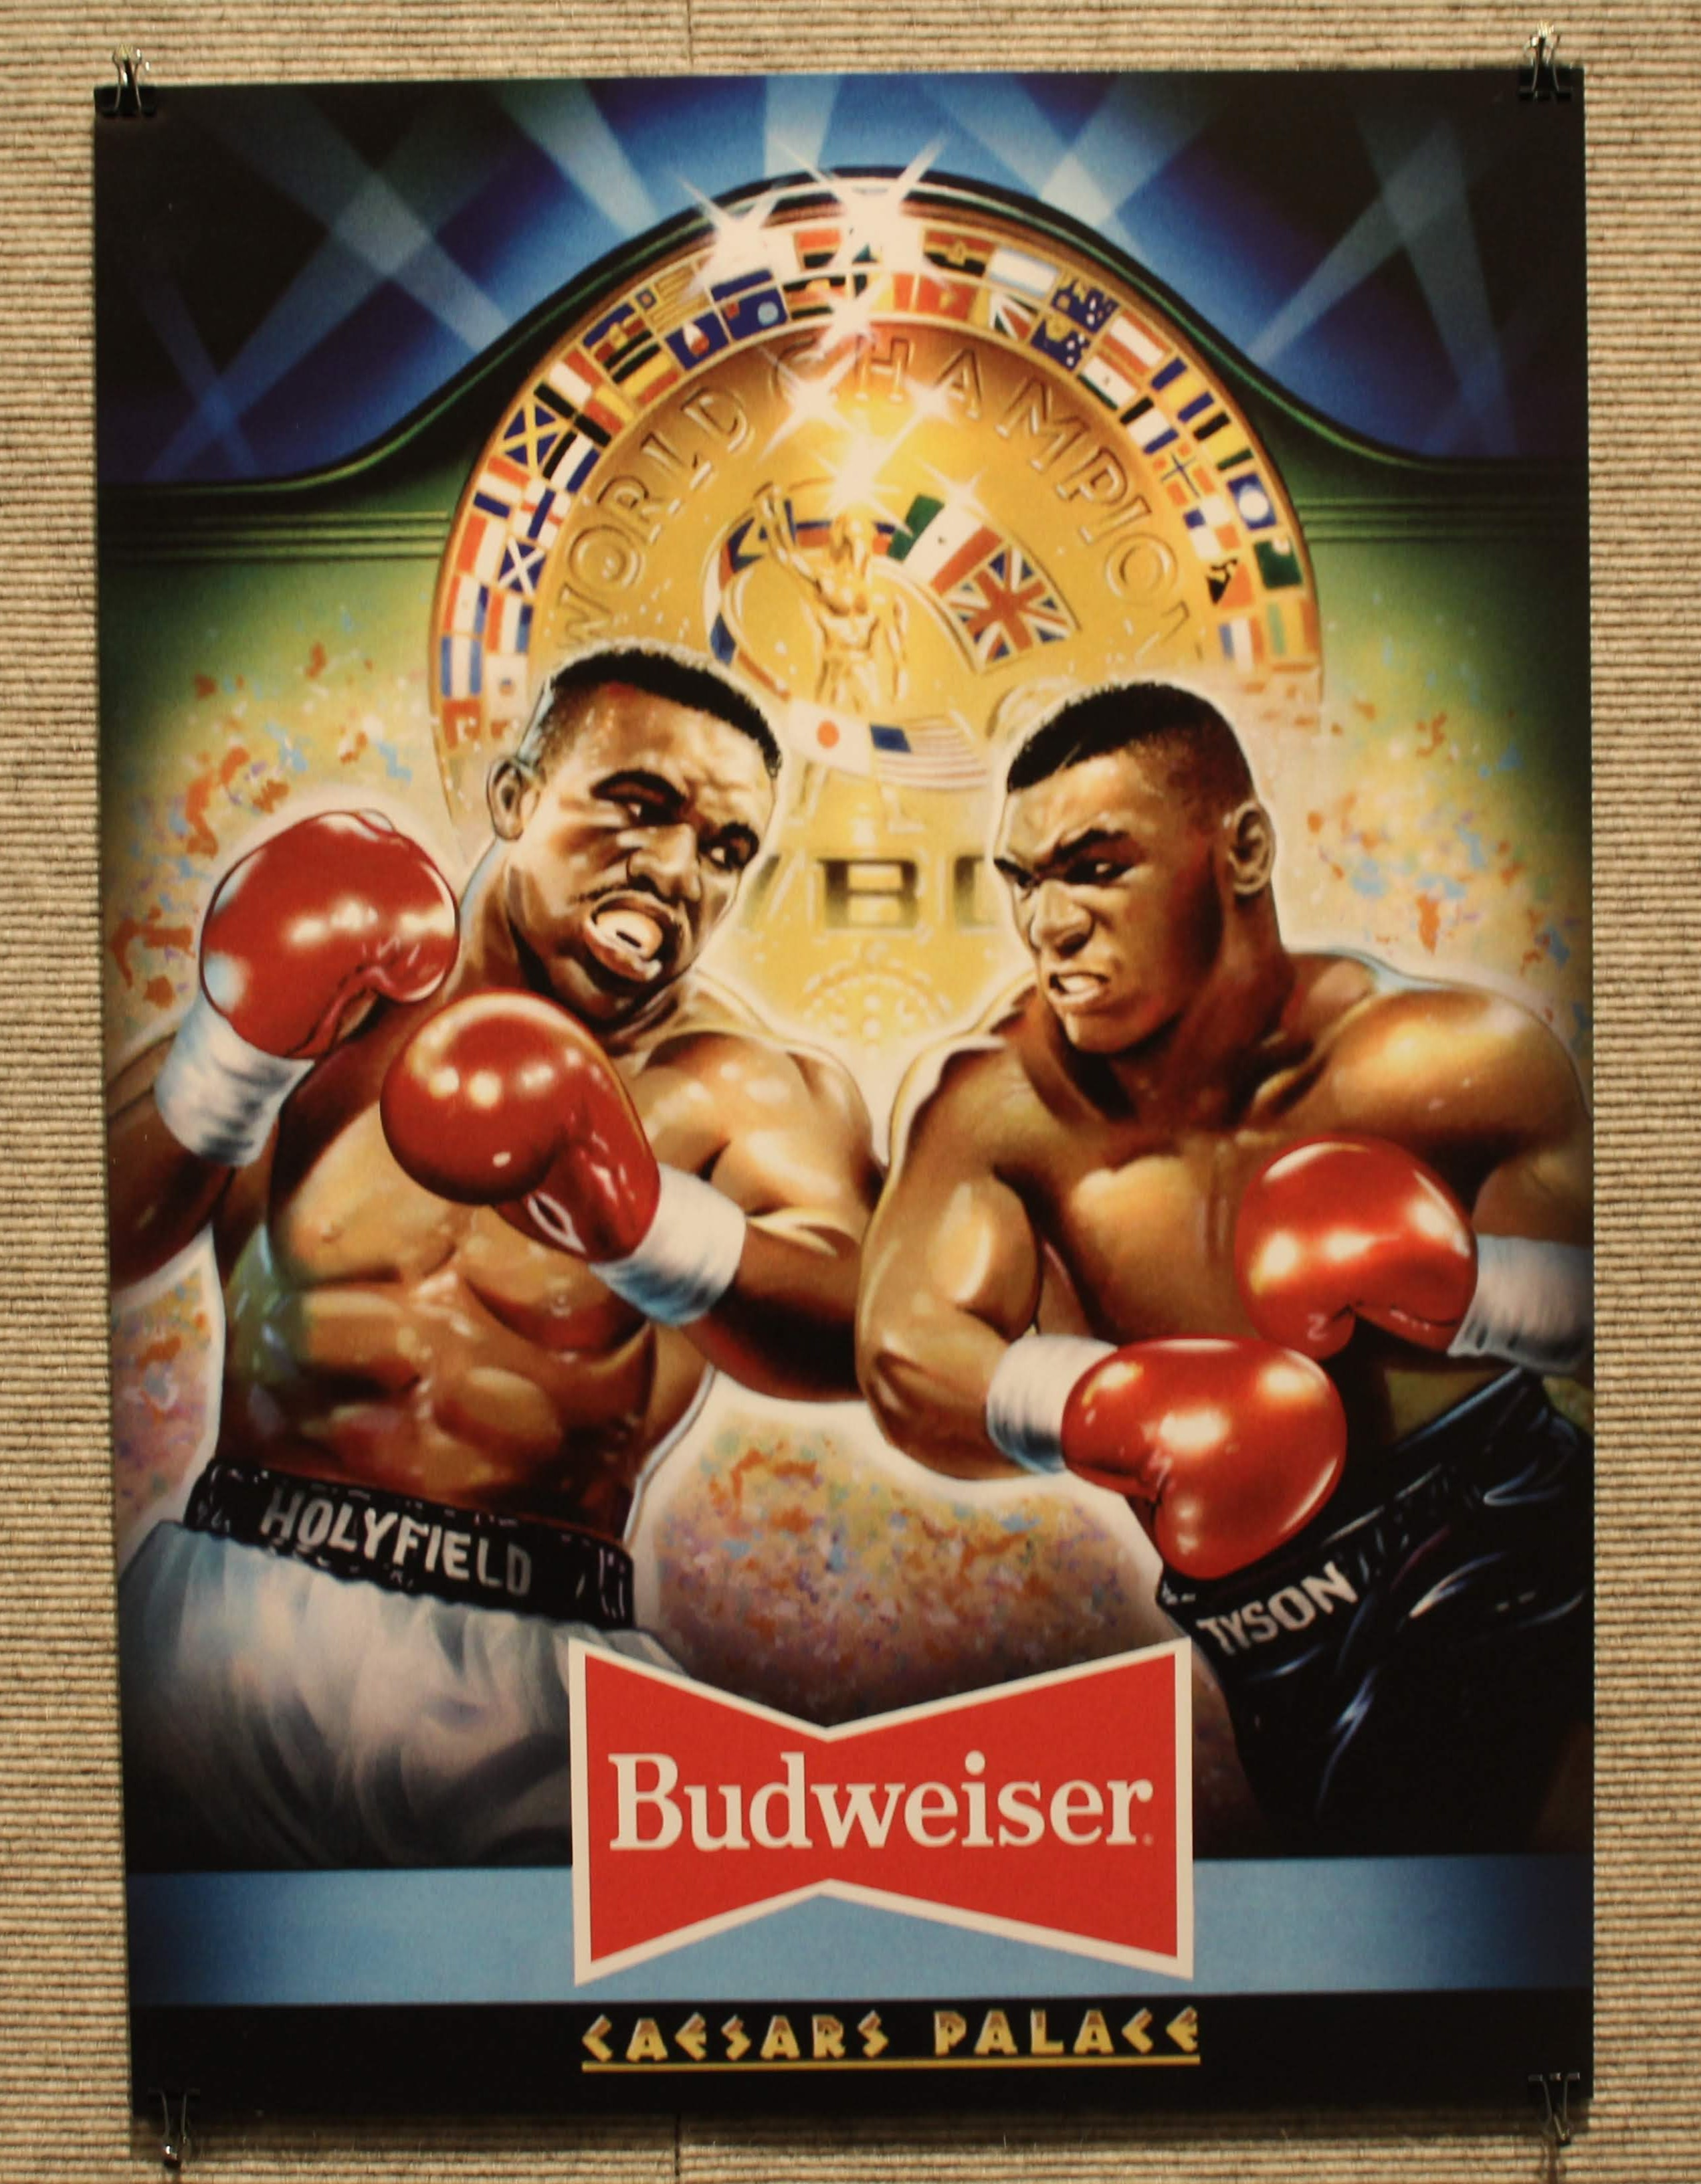 Image of a poster of an Evander Holyfield versus Mike Tyson fight